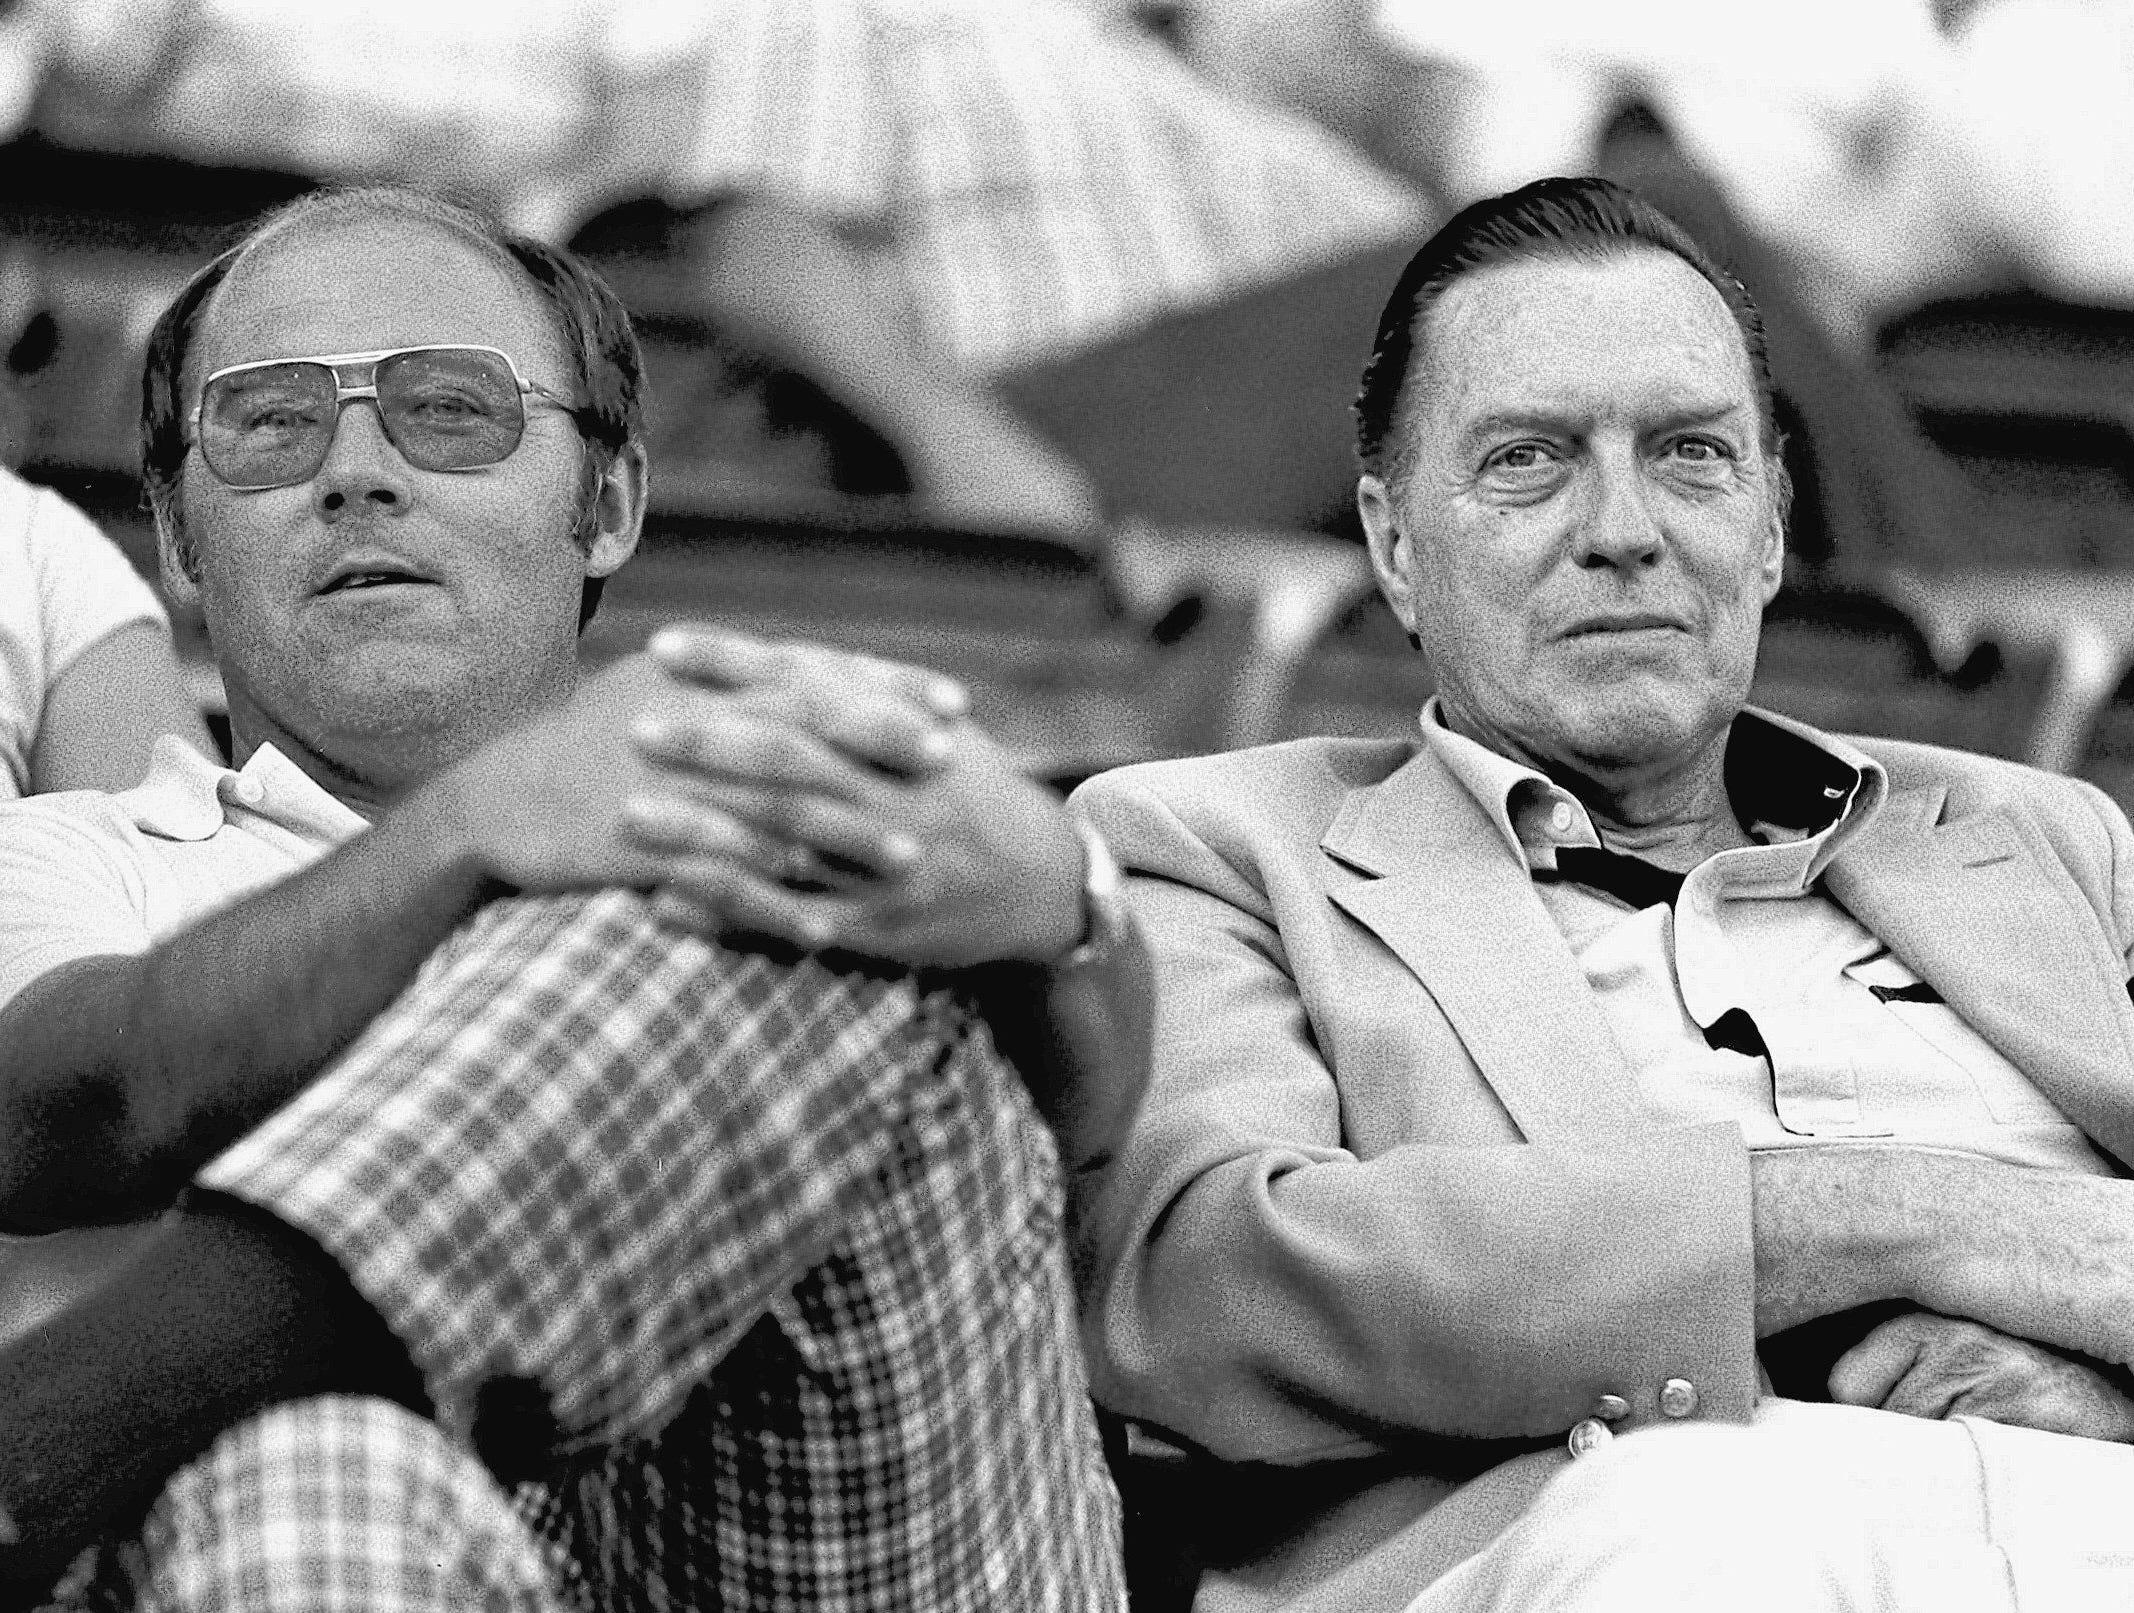 Memphis Chicks general manager Allie Prescott (Left) and Montreal Expos president and general manager John McHale (Right) look on as the Chicks defeated the Chattanooga Lokouts 9-4 before 4,445 fans at Tim McCarver Stadium on 27 May 1982. The Chicks, of the Southern League, are affiliated with the Expos.